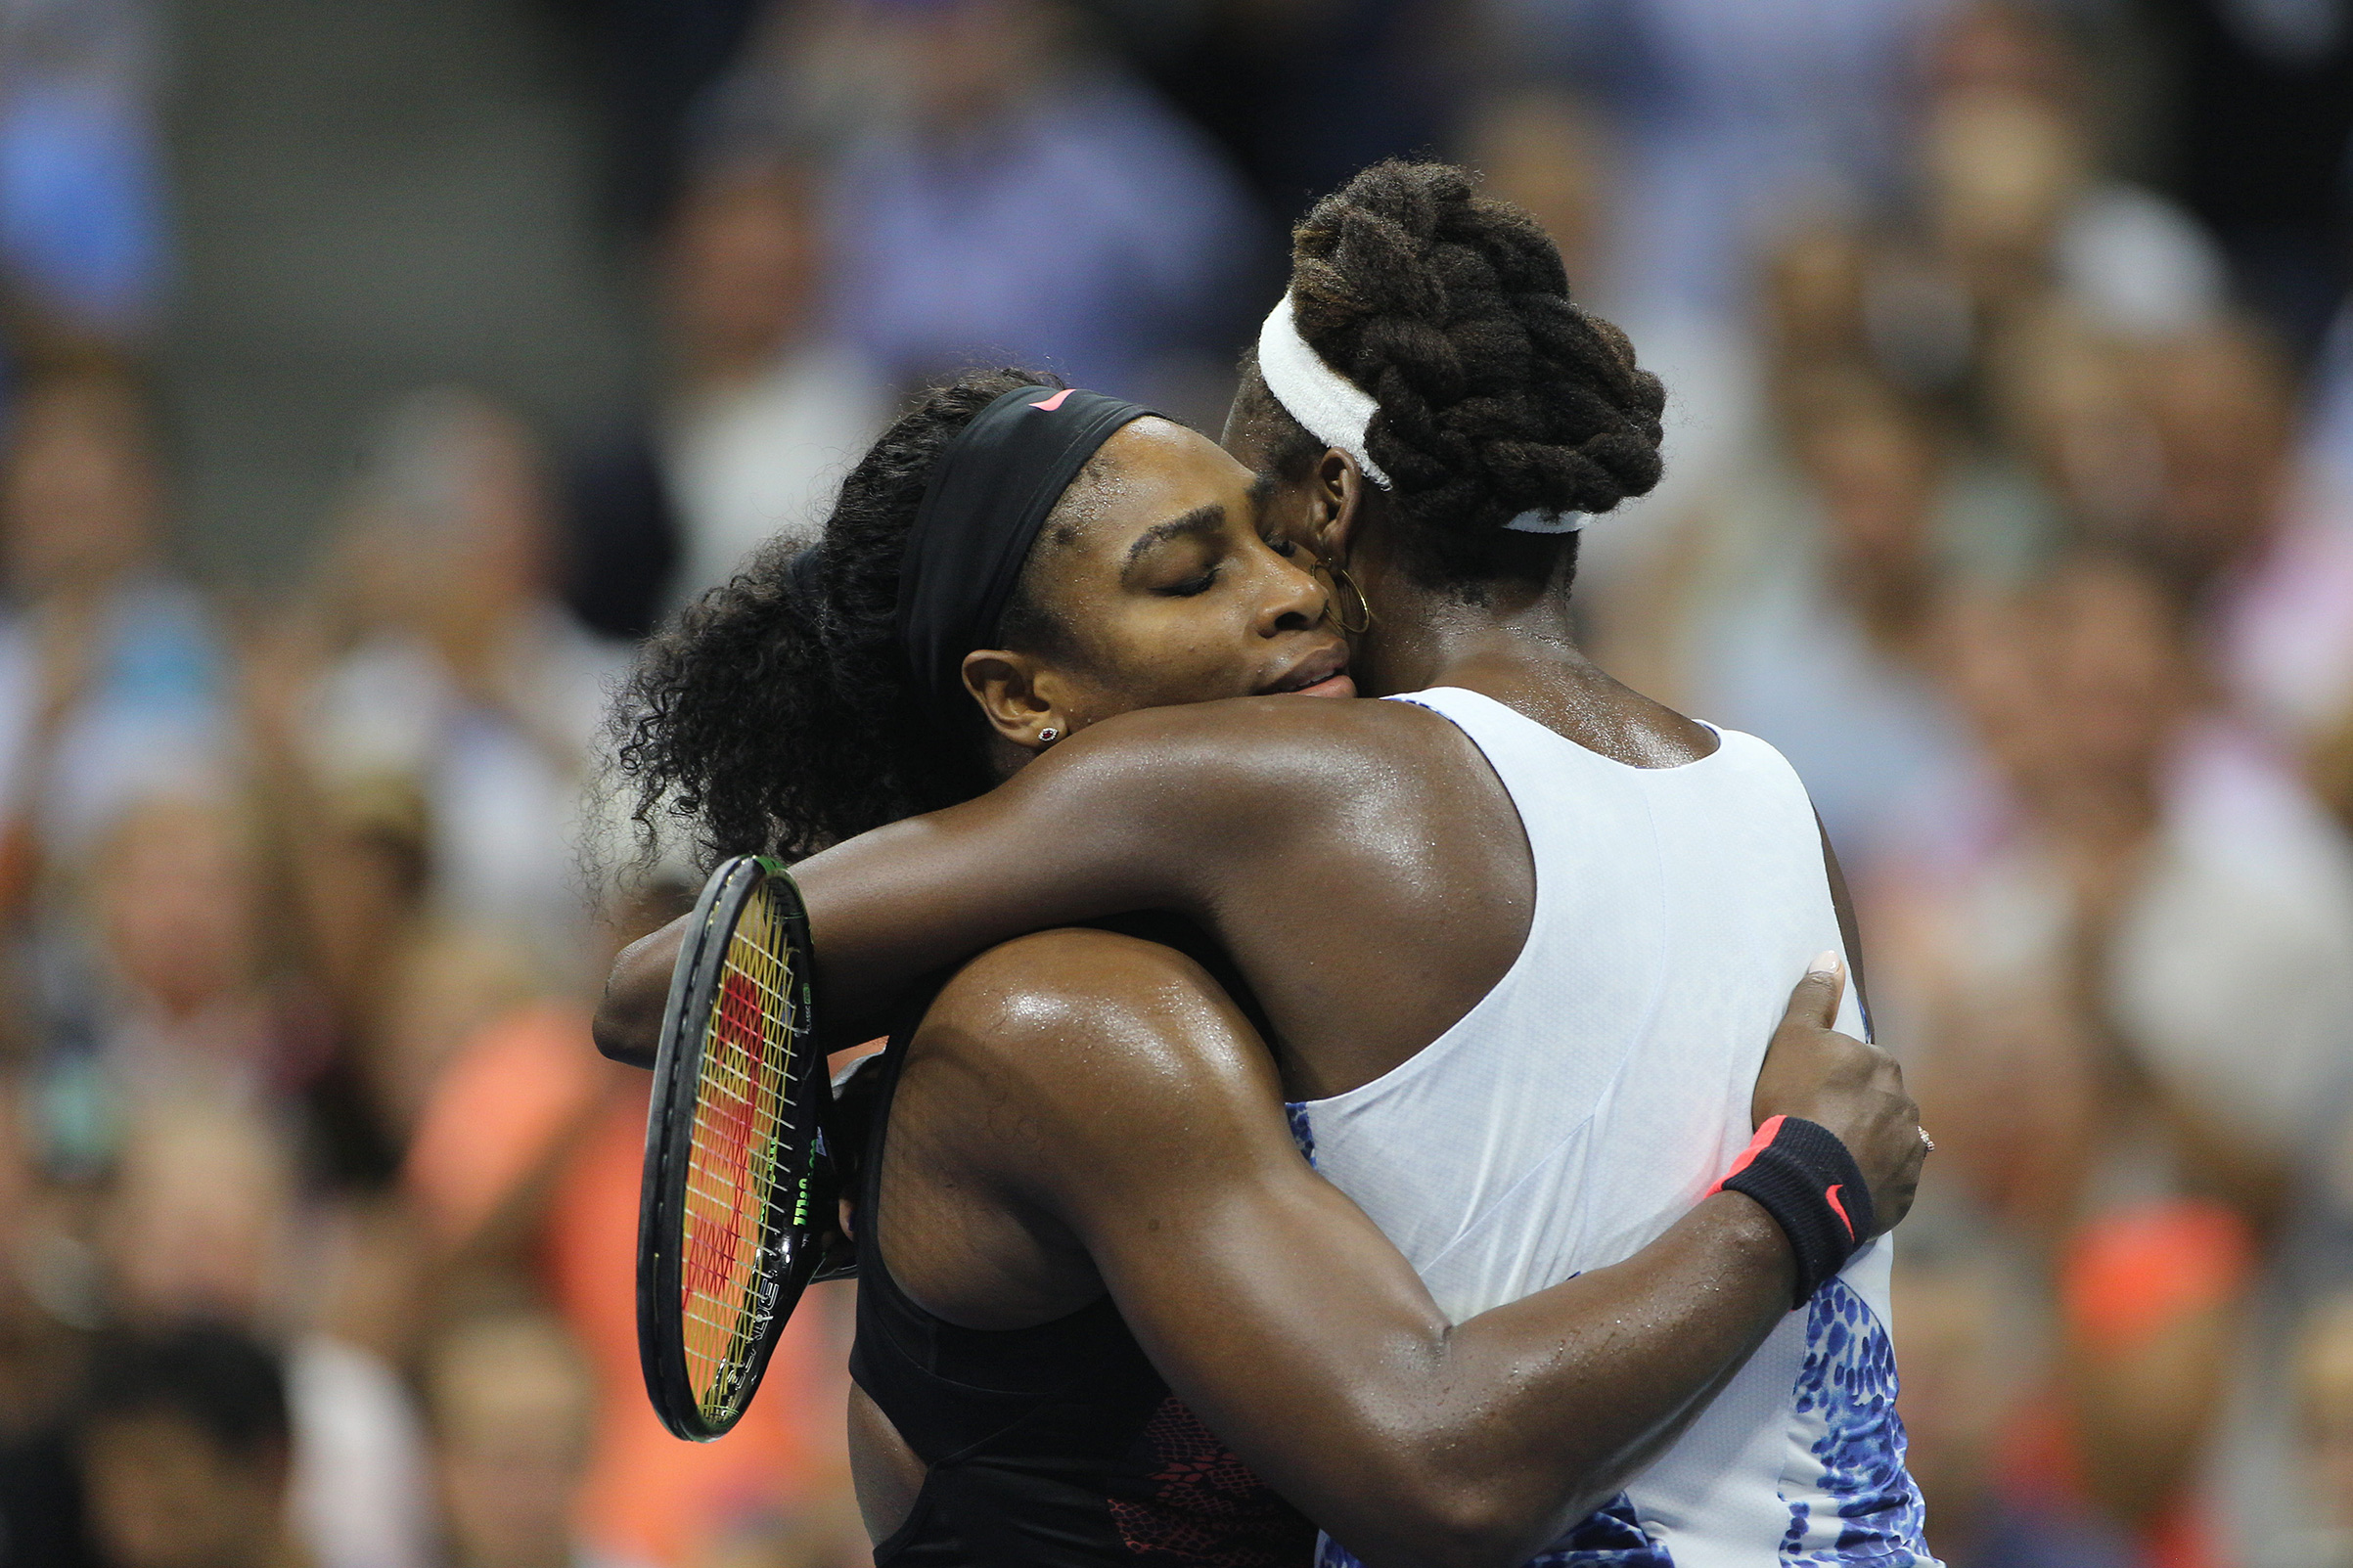 Serena Williams, USA and sister Venus Williams, USA, embrace after in their Women's Singles Quarterfinals match won by Serena during the US Open Tennis Tournament, Flushing, New York, USA on Sept 8, 2015.